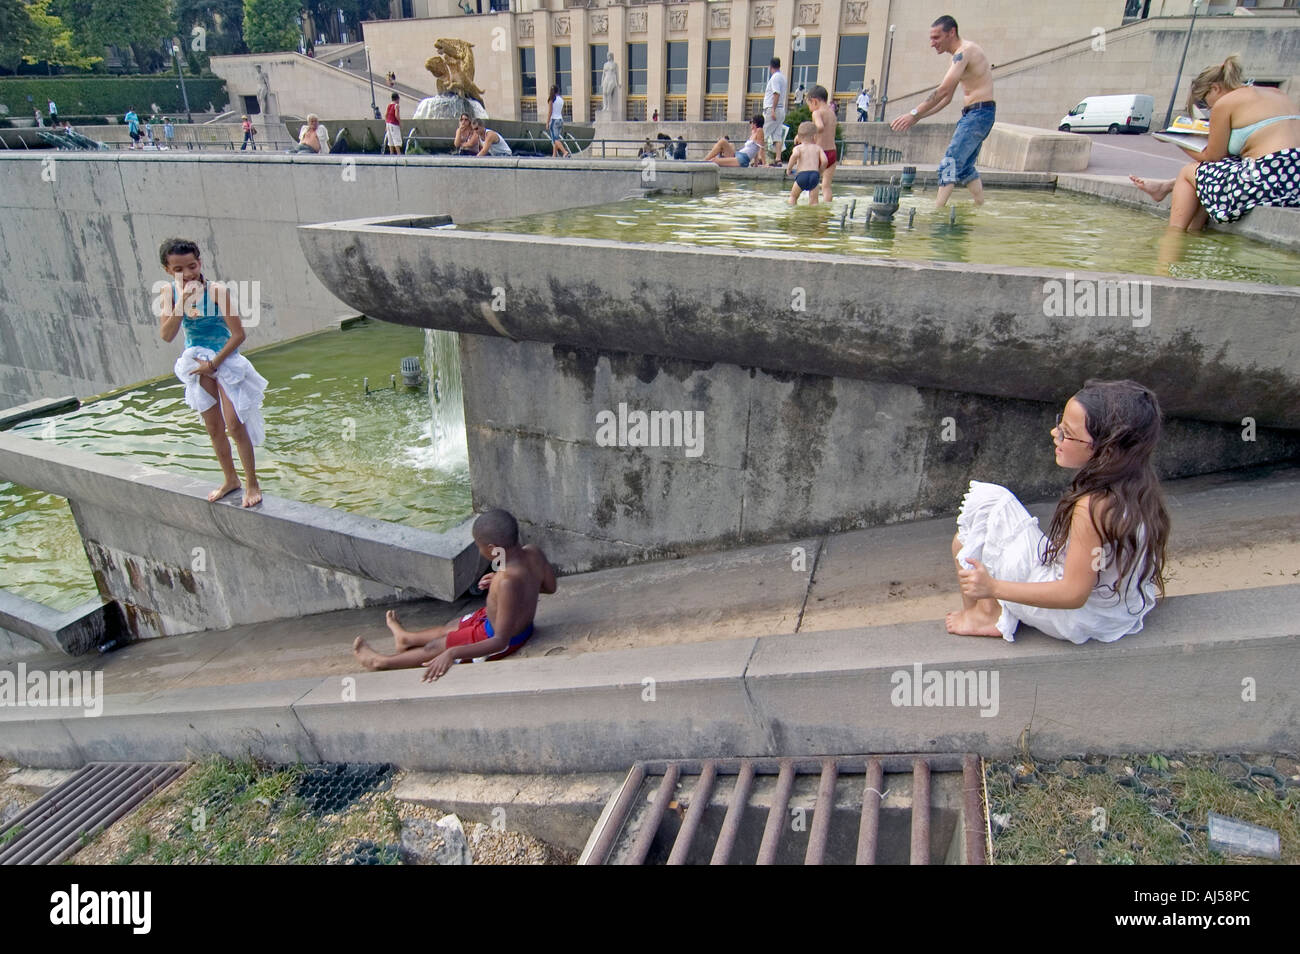 Kids playing in the fountain and pond of the Champ de Mars esplanade during the heatwave, Paris, France. - Stock Image